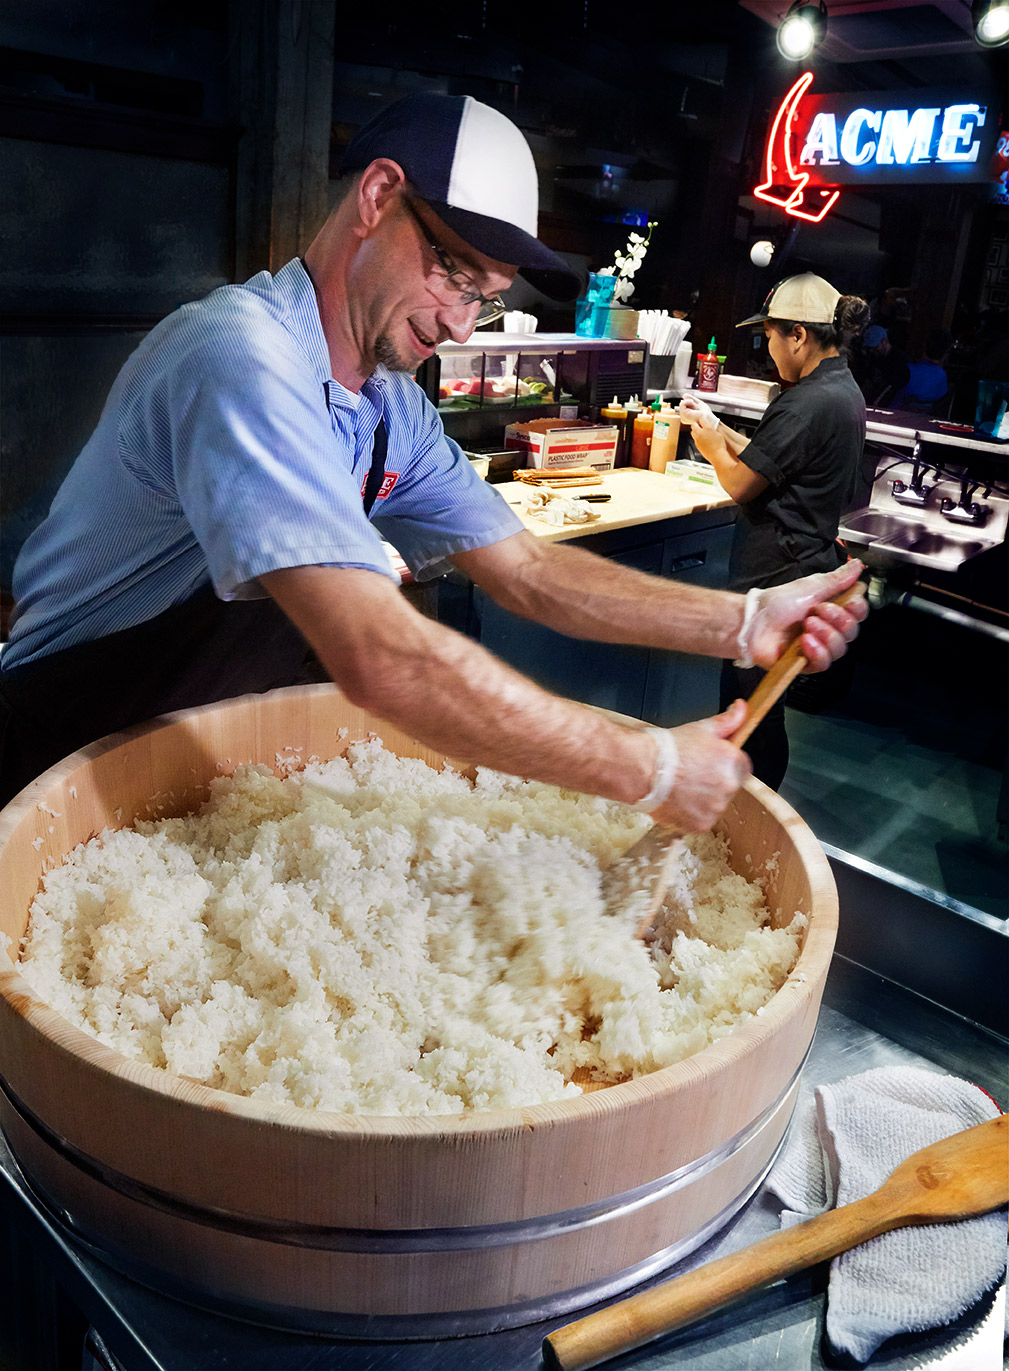 Acme Feed and Seed Nashville, mixing sushi rice